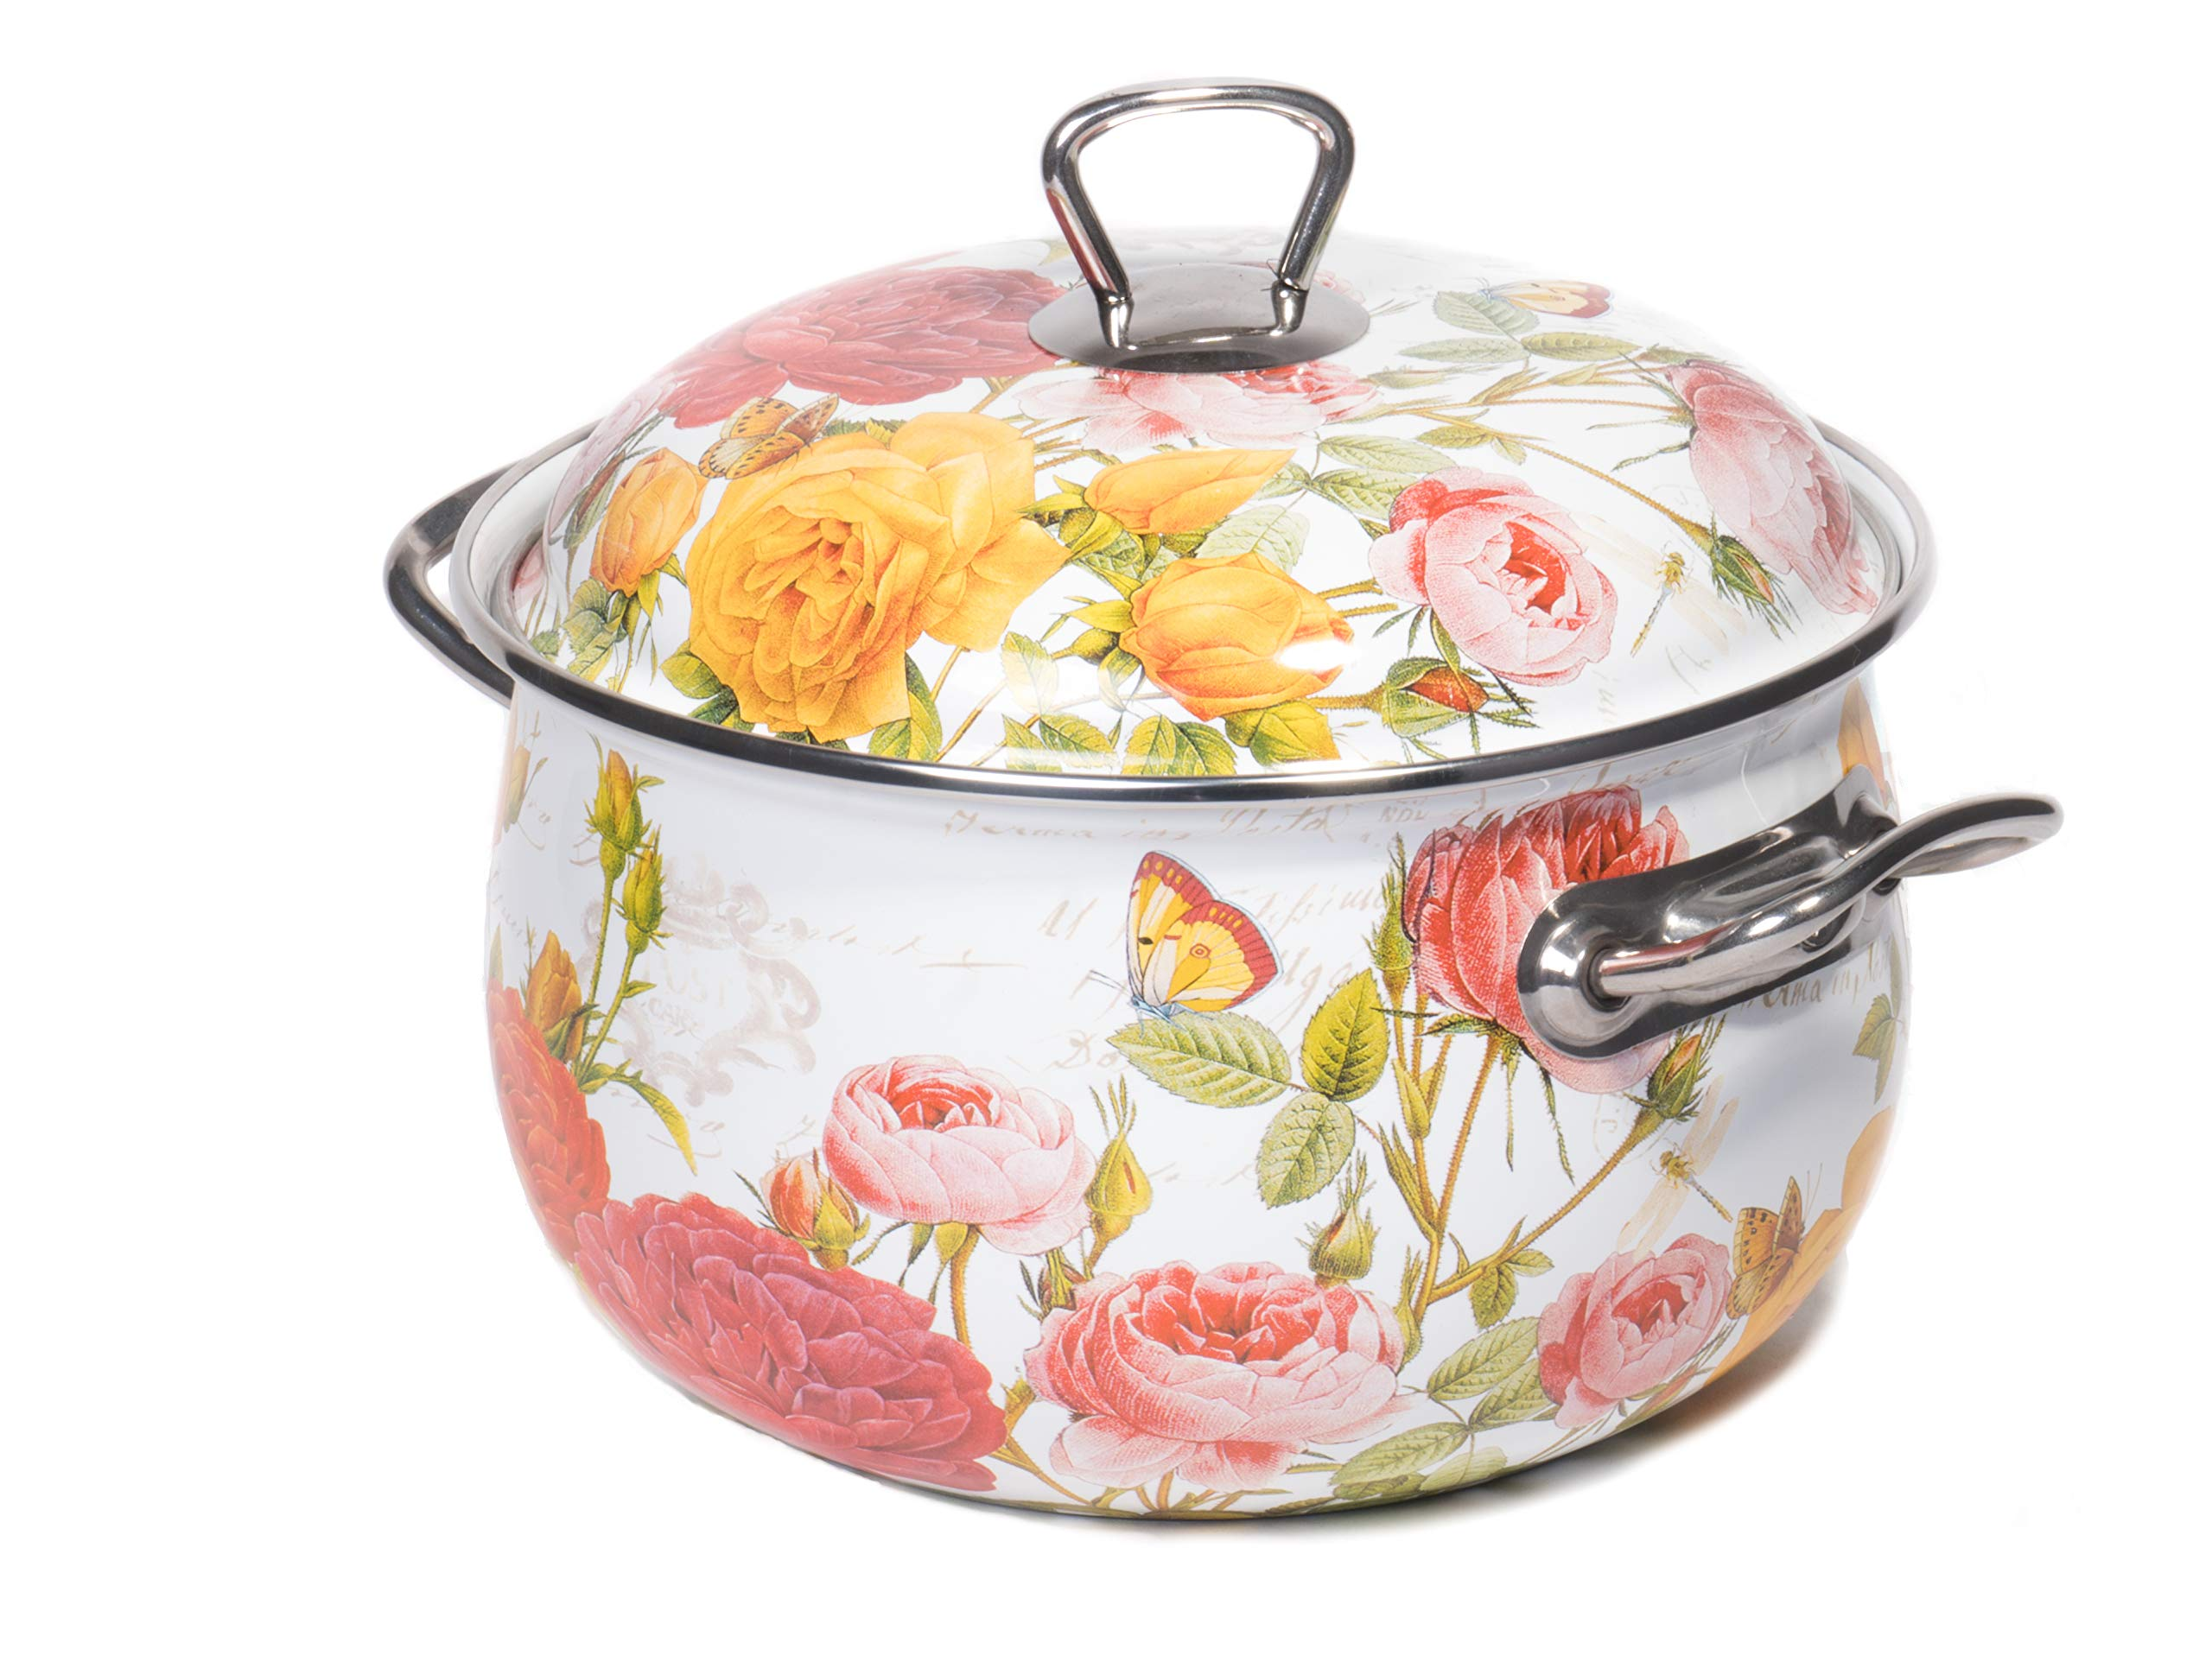 Red Co. Enamel On Steel Round Covered Stockpot, Pasta Stock Stew Soup Casserole Dish Lid, Up to 6.5 Quarts - 24 cm (Roses)